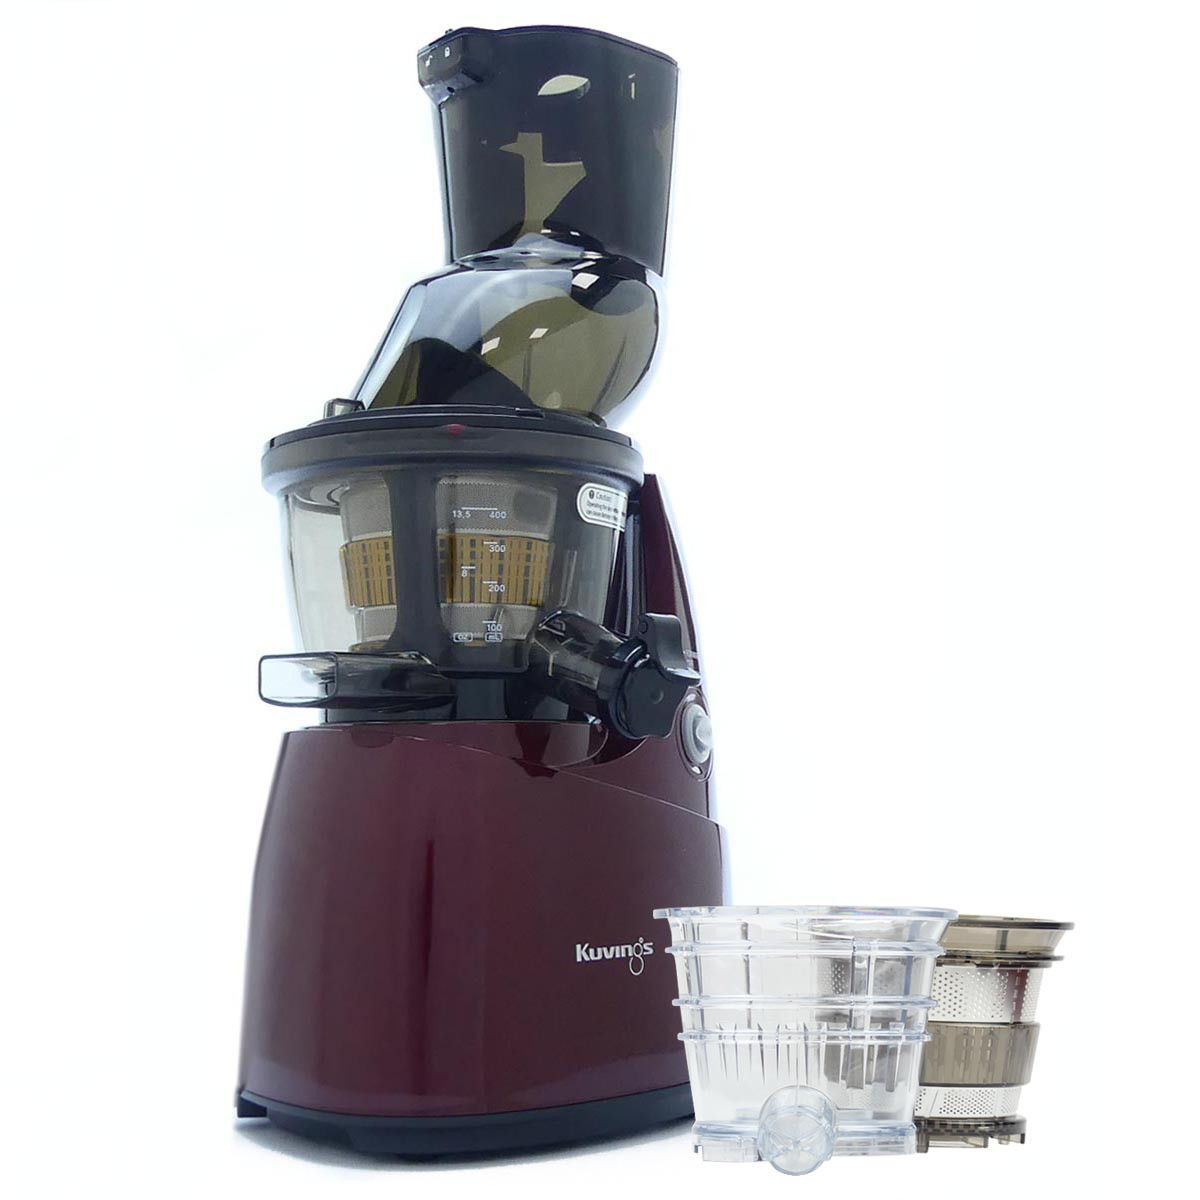 Kuvings B8200 Whole Fruit Juicer in Red with Accessories